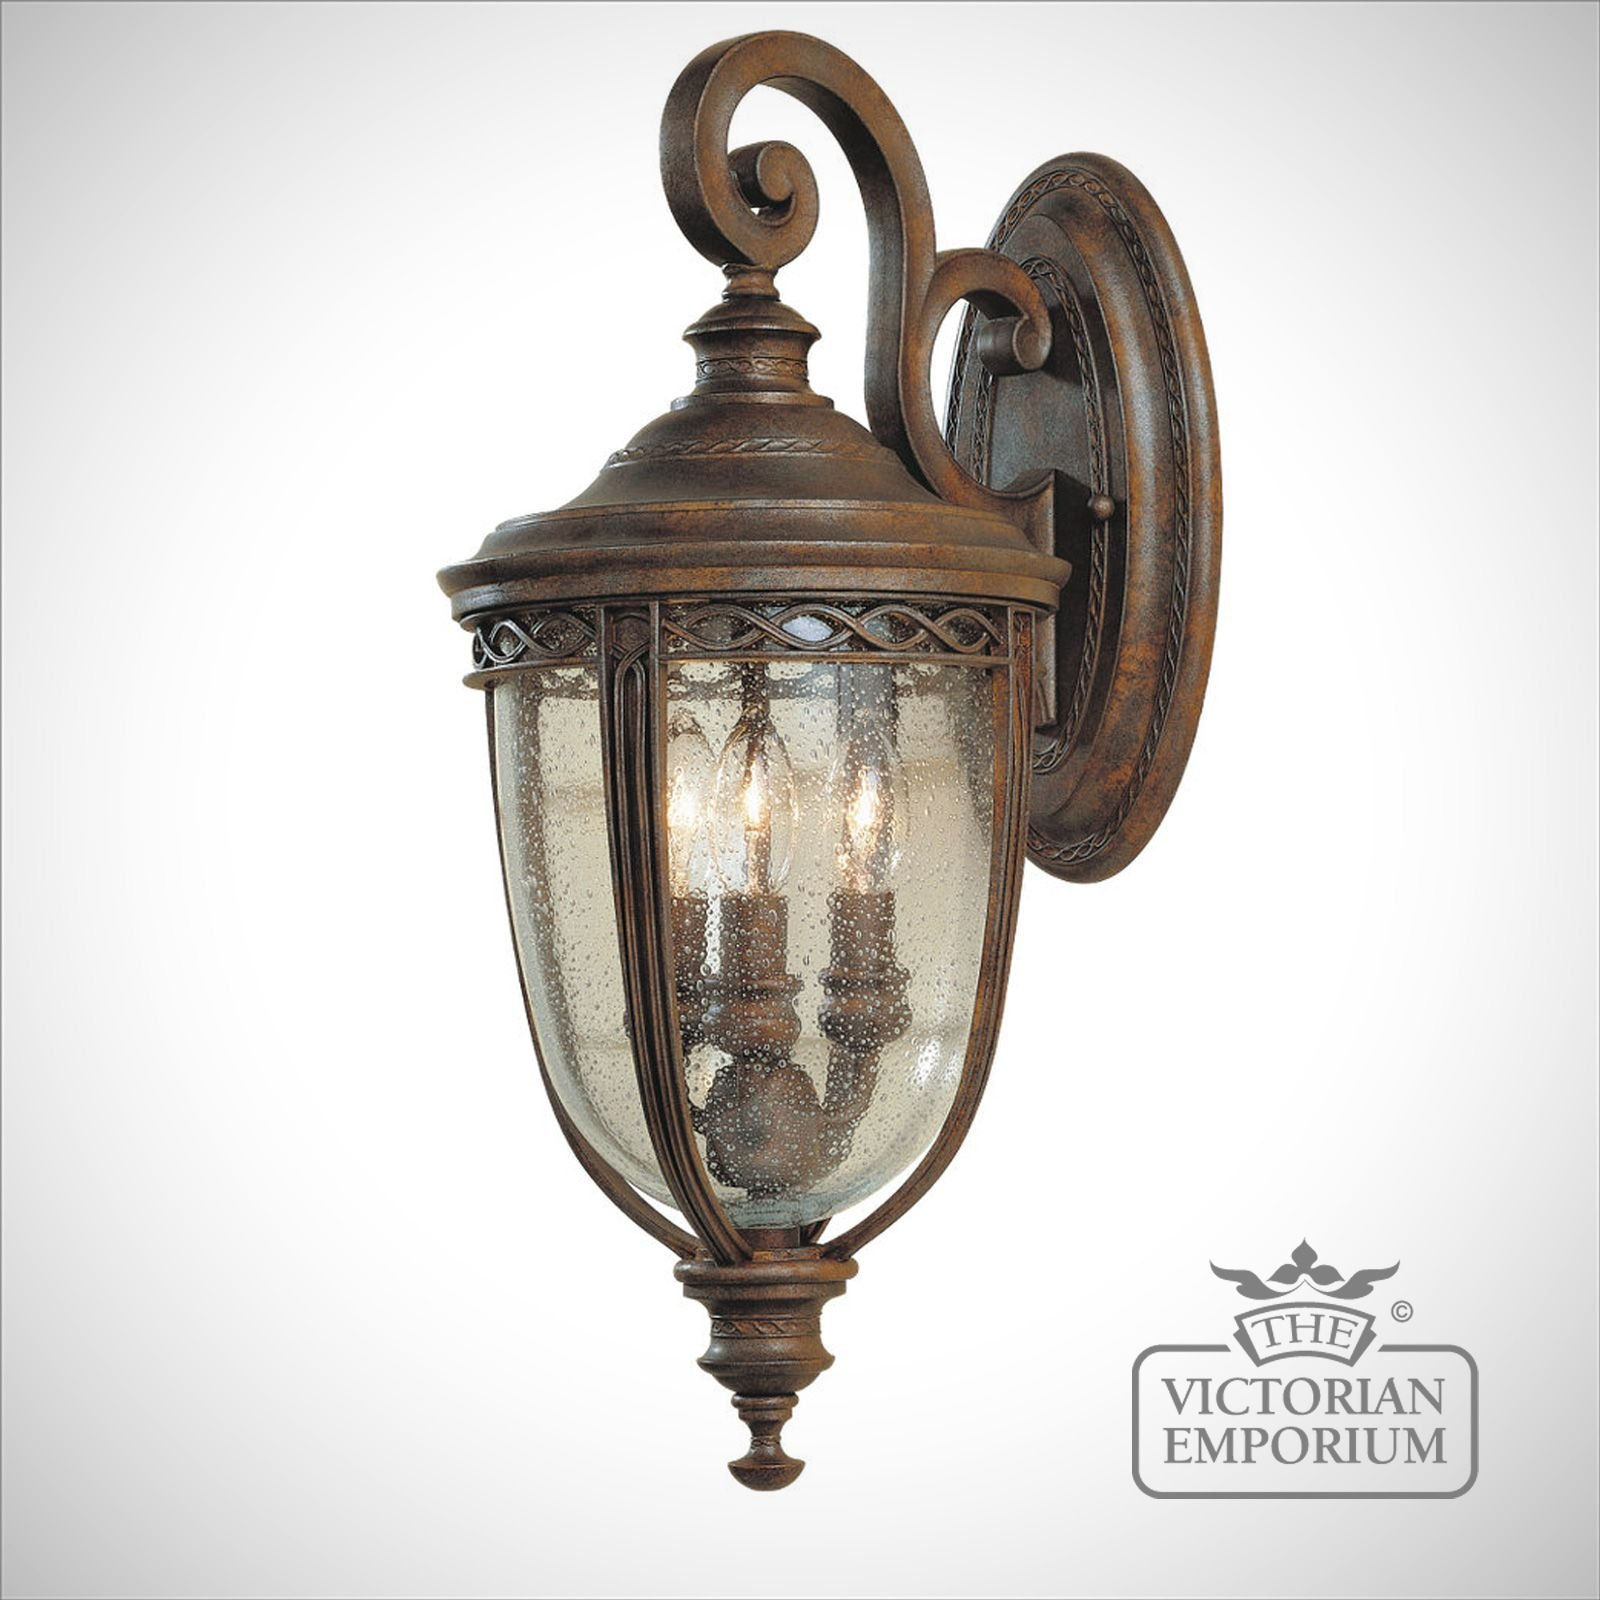 Large Decorative Wall Lights : Bridle extra large wall light in British Bronze finish Outdoor Wall Lights